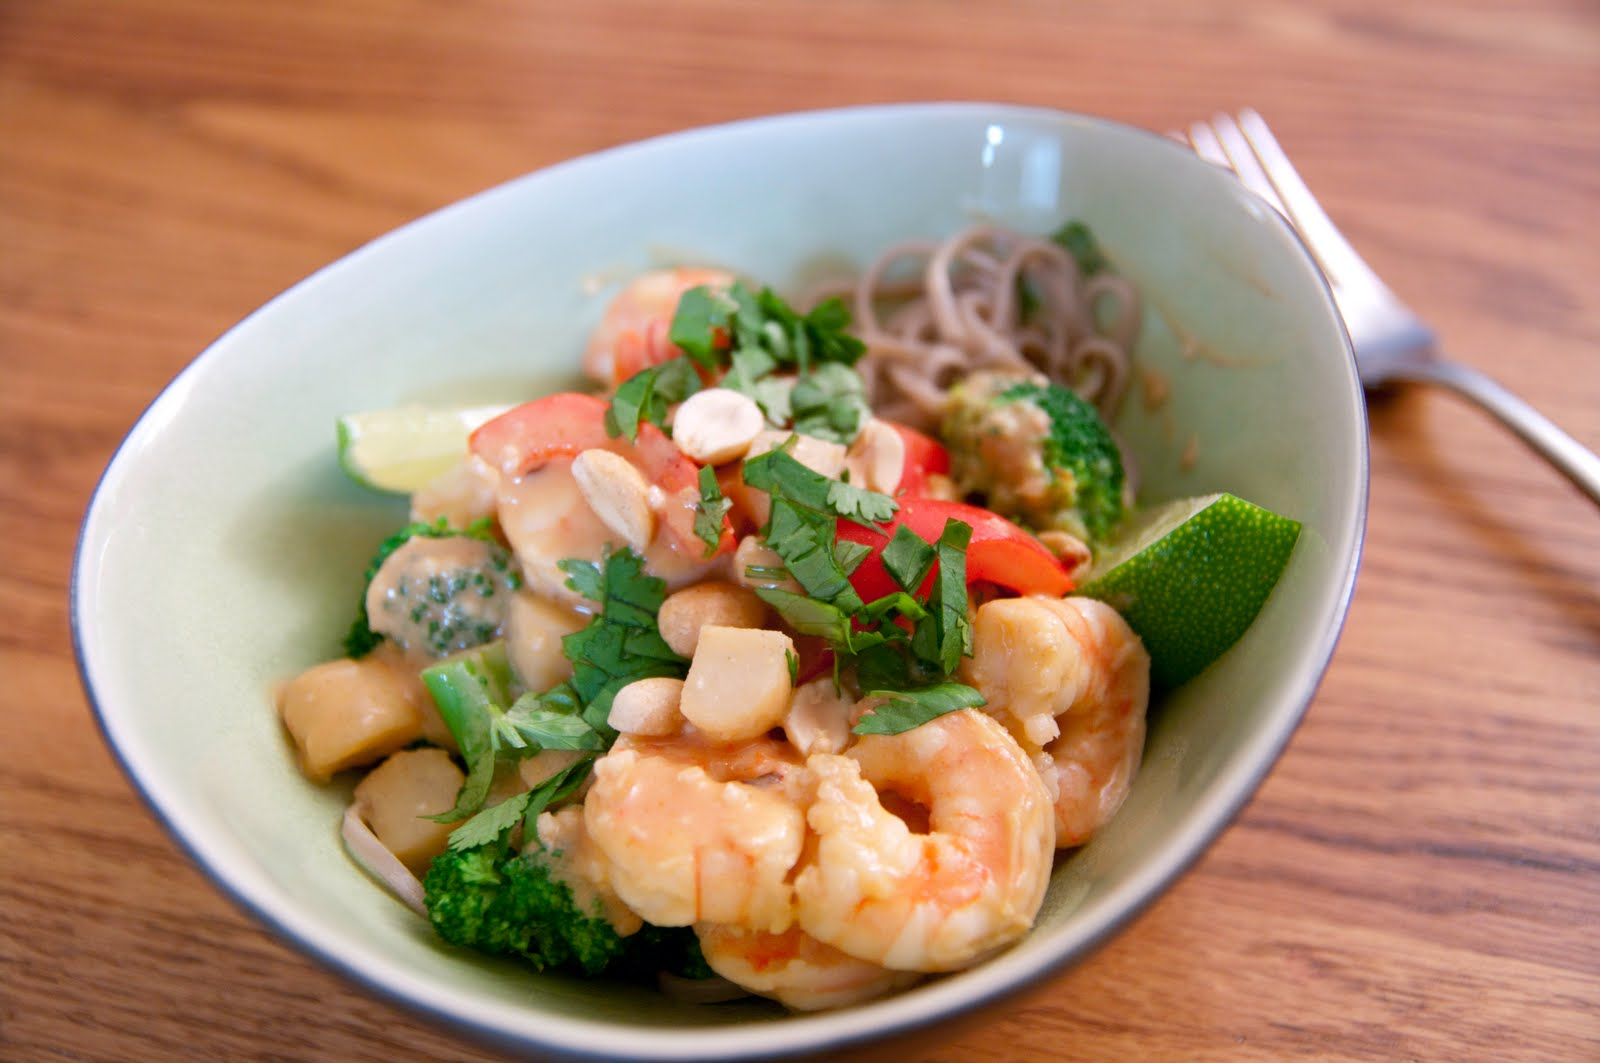 Blog About Food: Thai Coconut Shrimp